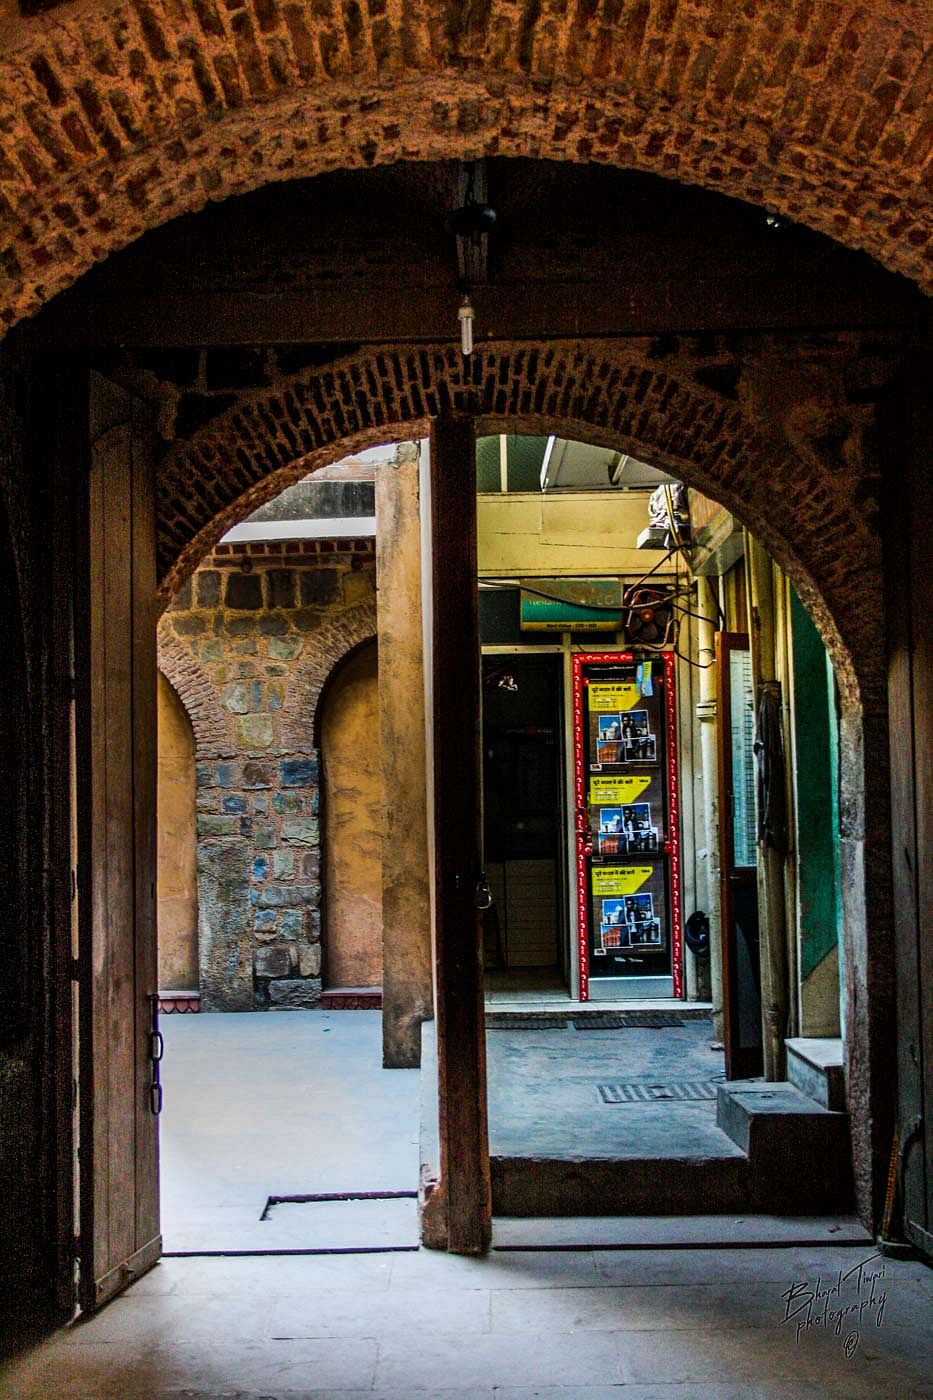 The doorway of the haveli.